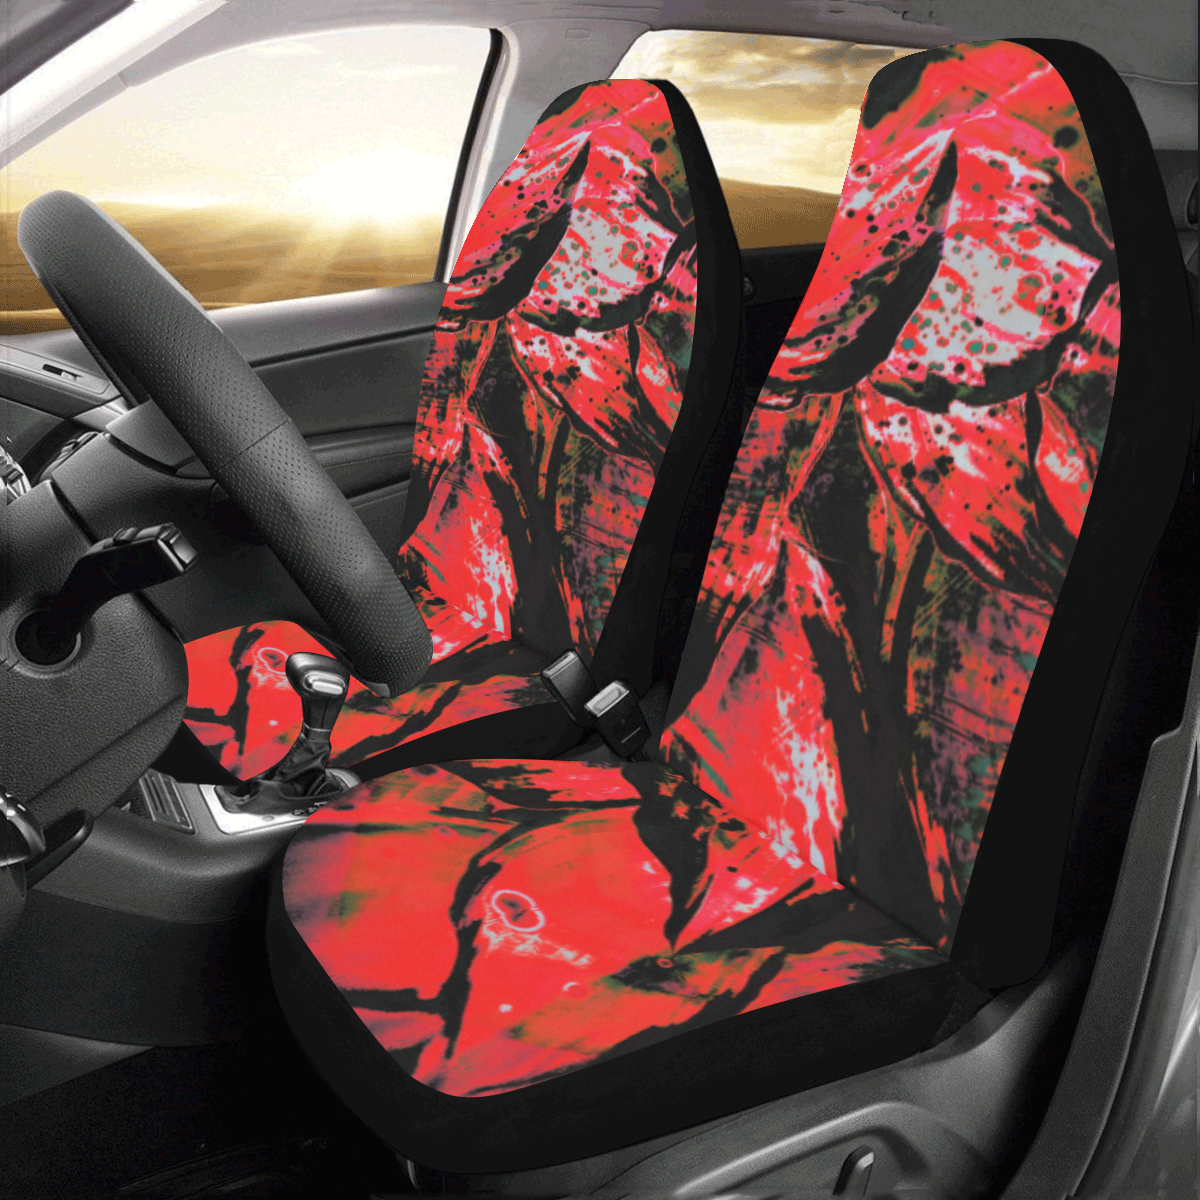 Red Dark Crew Unit Covers Car Seat Covers (Set of 2)